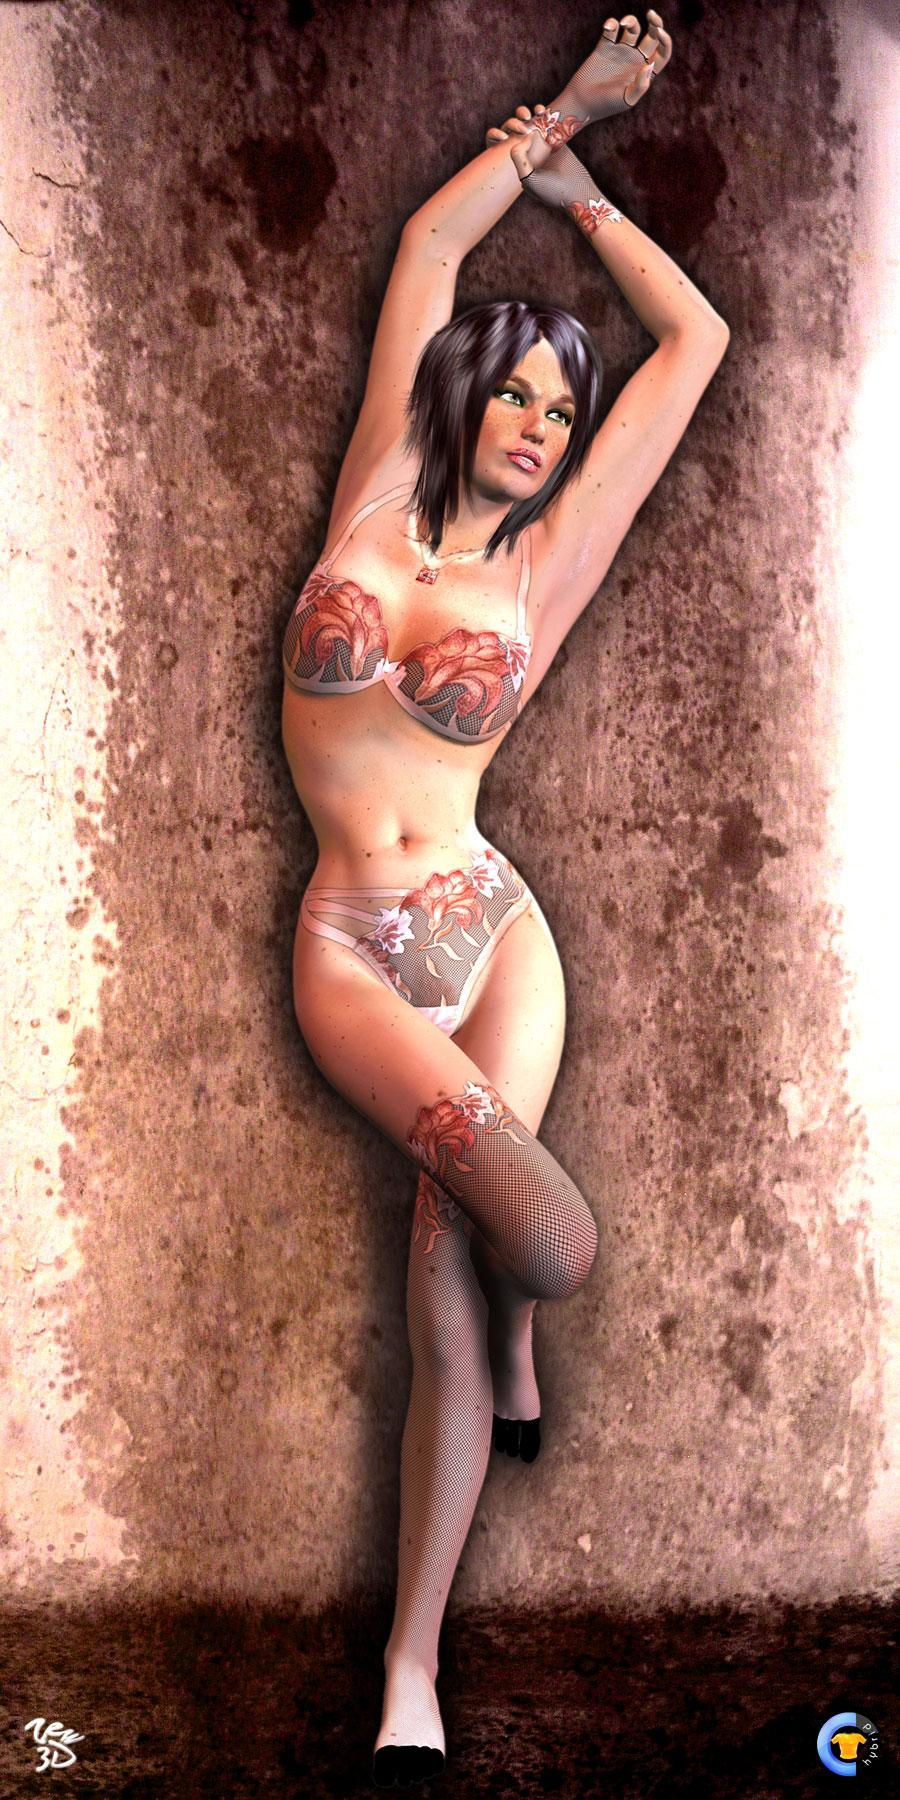 CLOTHER Hybrid - Waking up my senses!